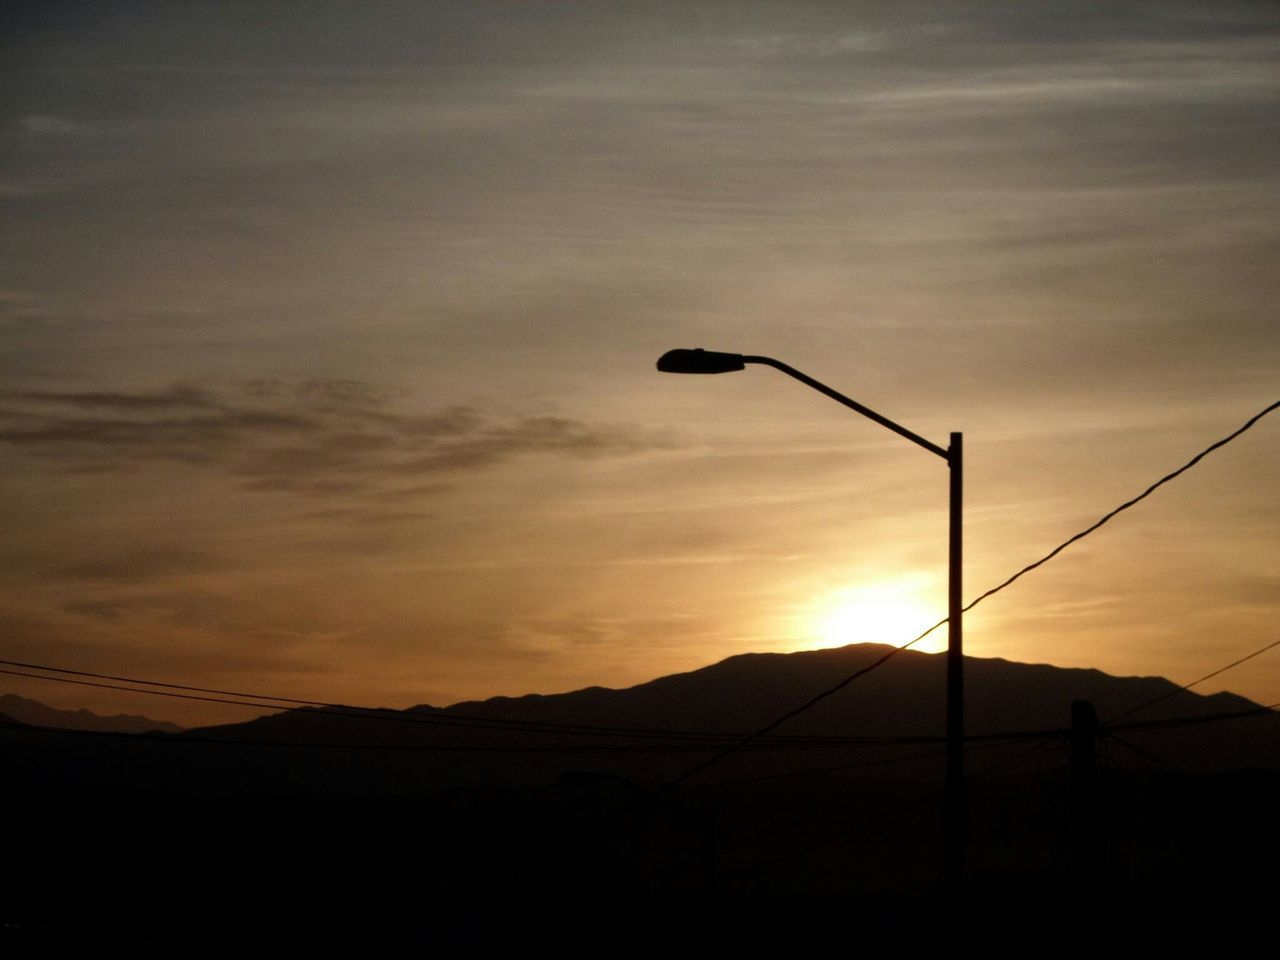 Low Angle View Of Street Light And Mountains Against Sky During Sunset